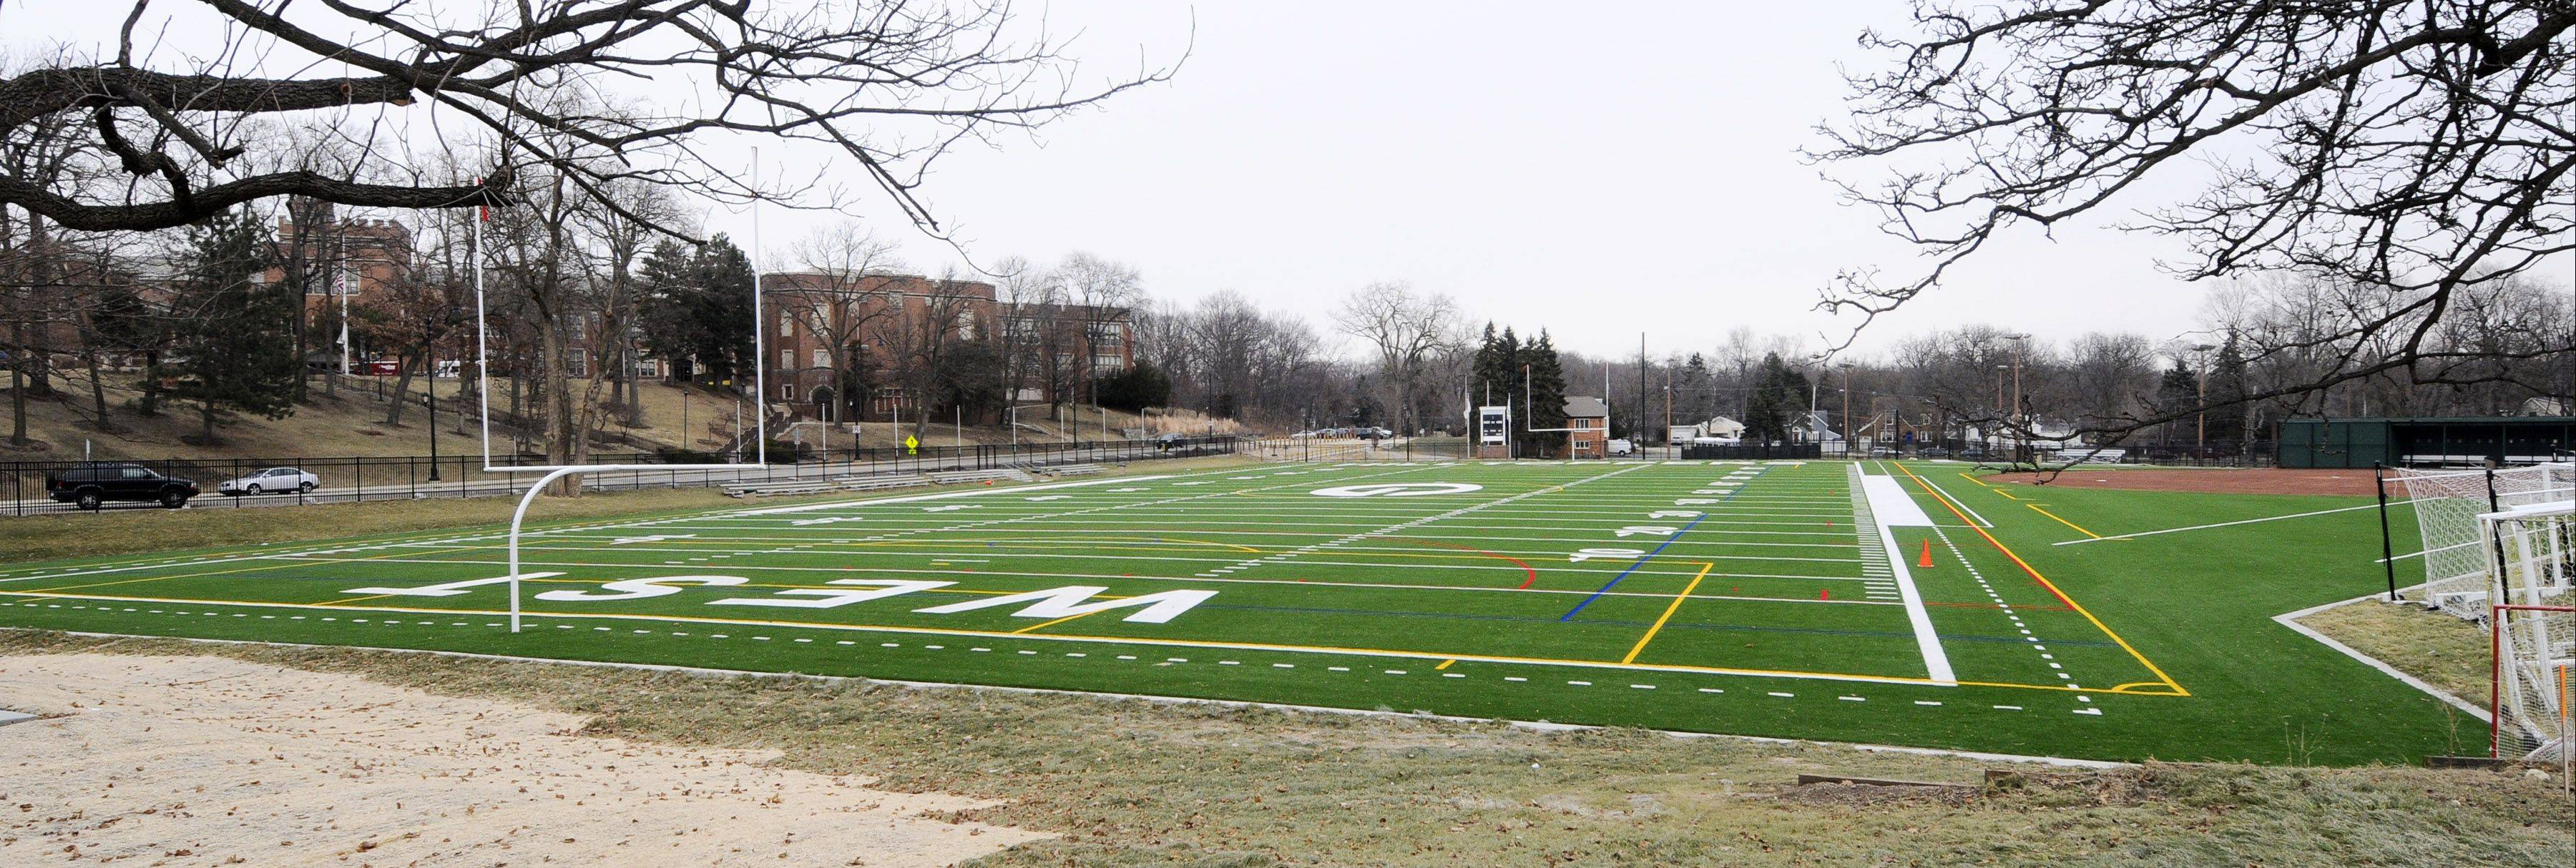 Officials at Glenbard High School District 87 want to add lights to Memorial Field, across from Glenbard West High School in Glen Ellyn.